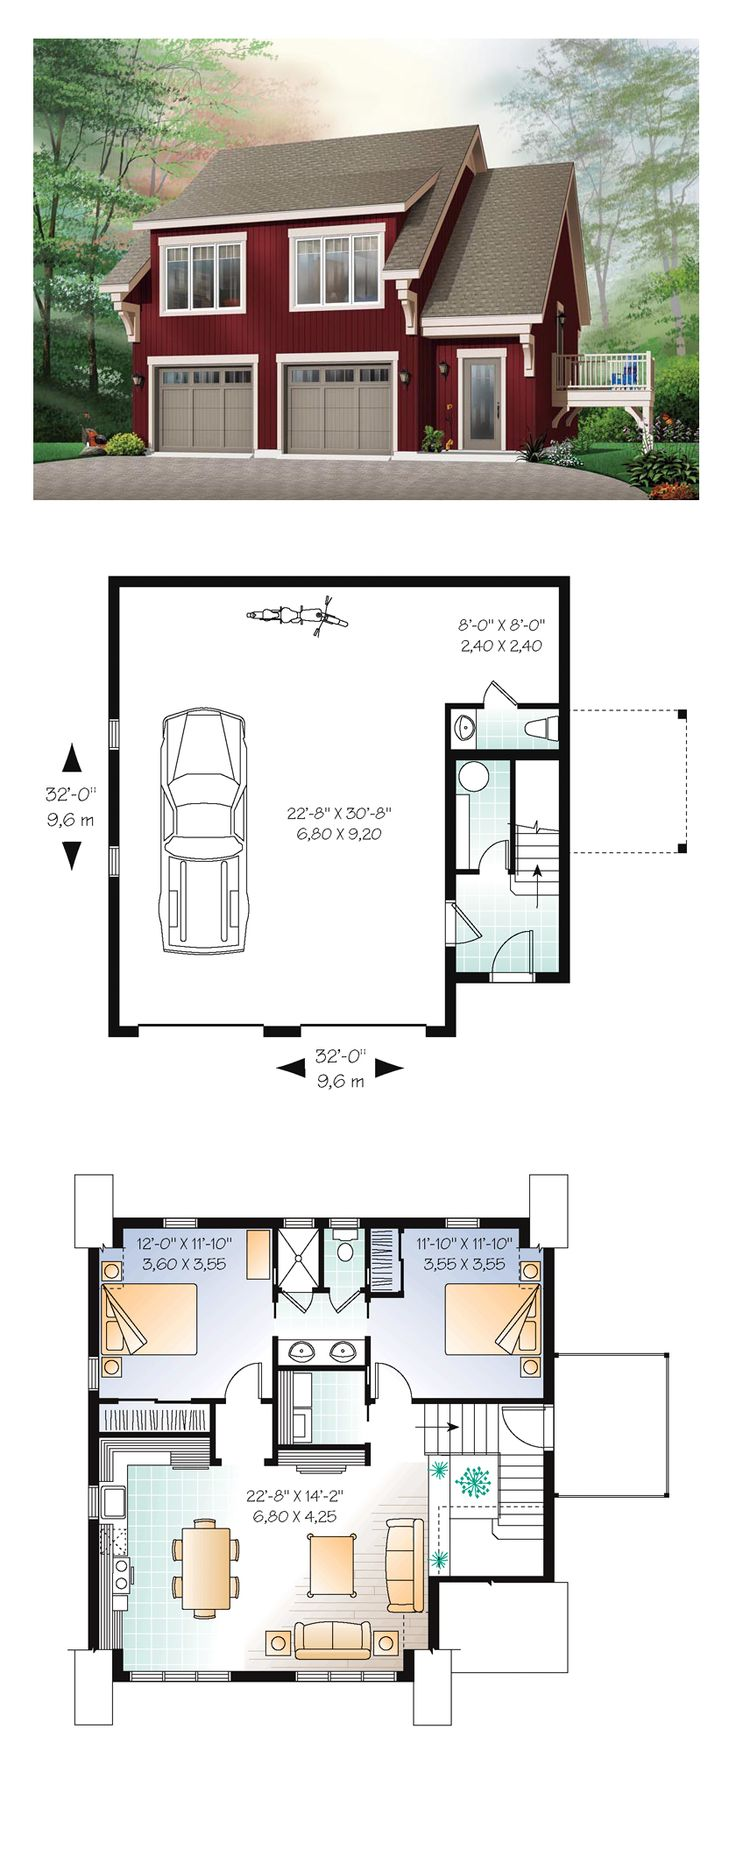 56 best Garage Apartment Plans images – Garage Plans With Living Space On Top